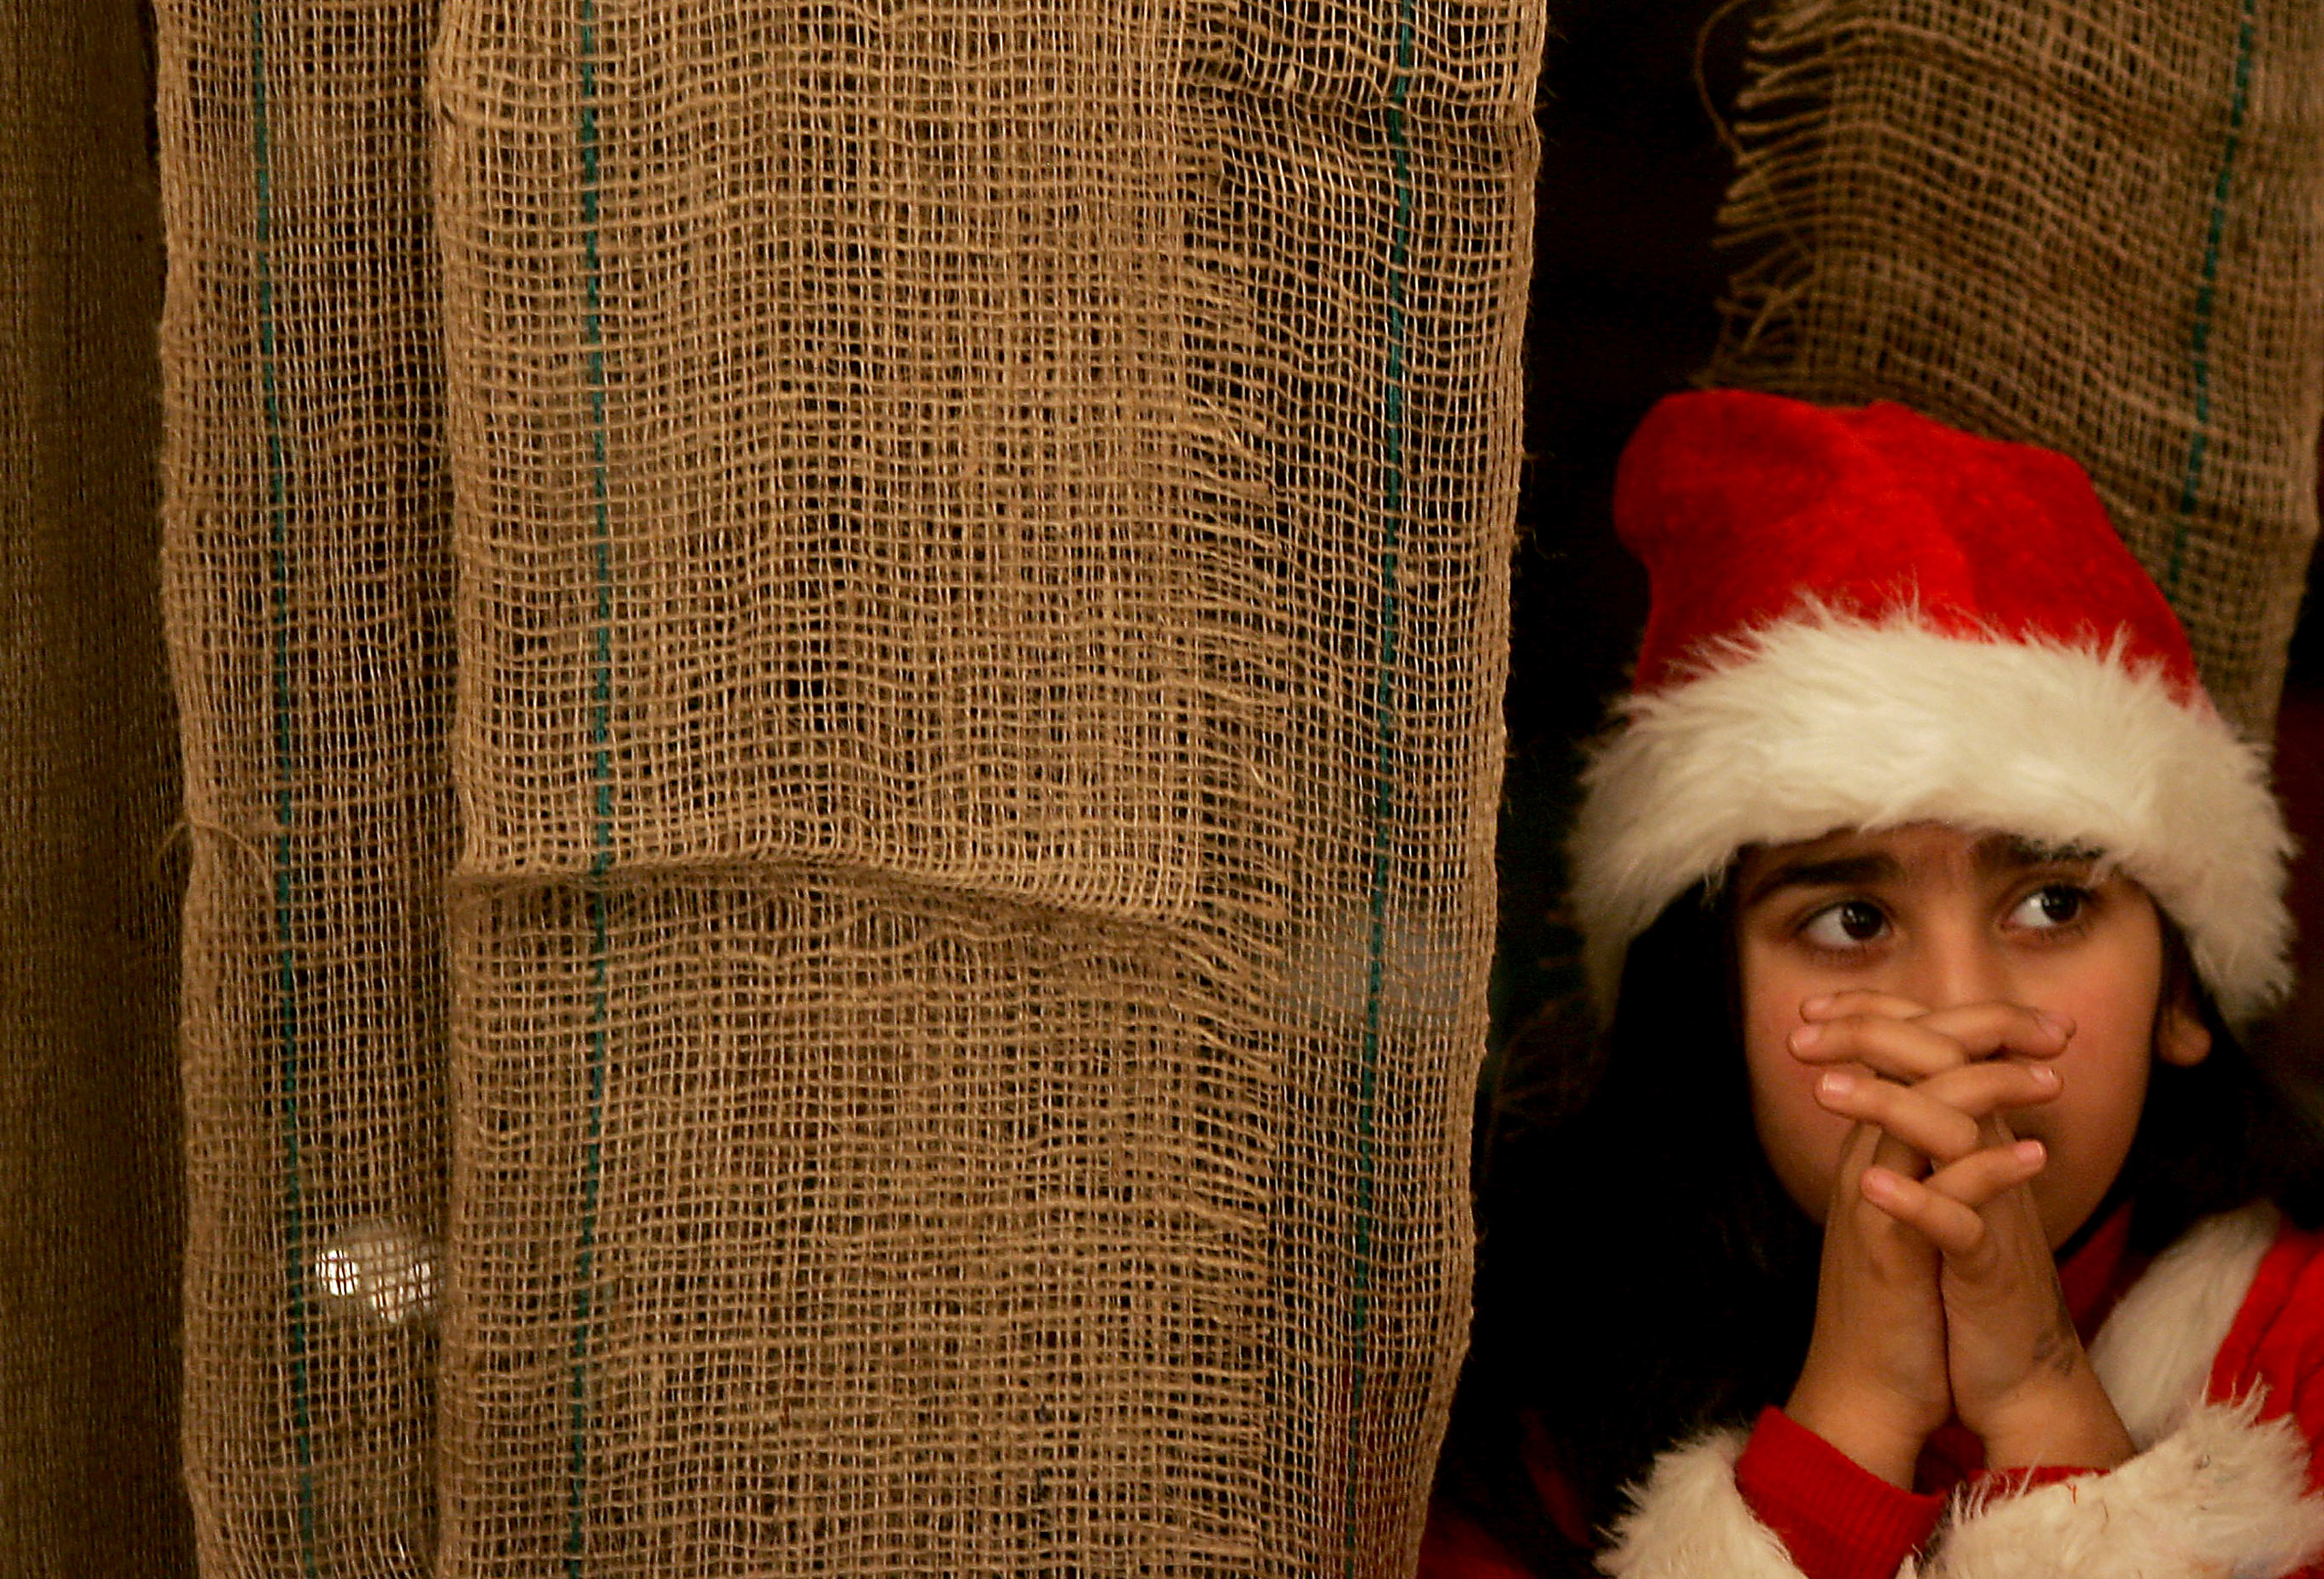 web-palestinian-girl-praying-christmas-saif-dahlah-afp